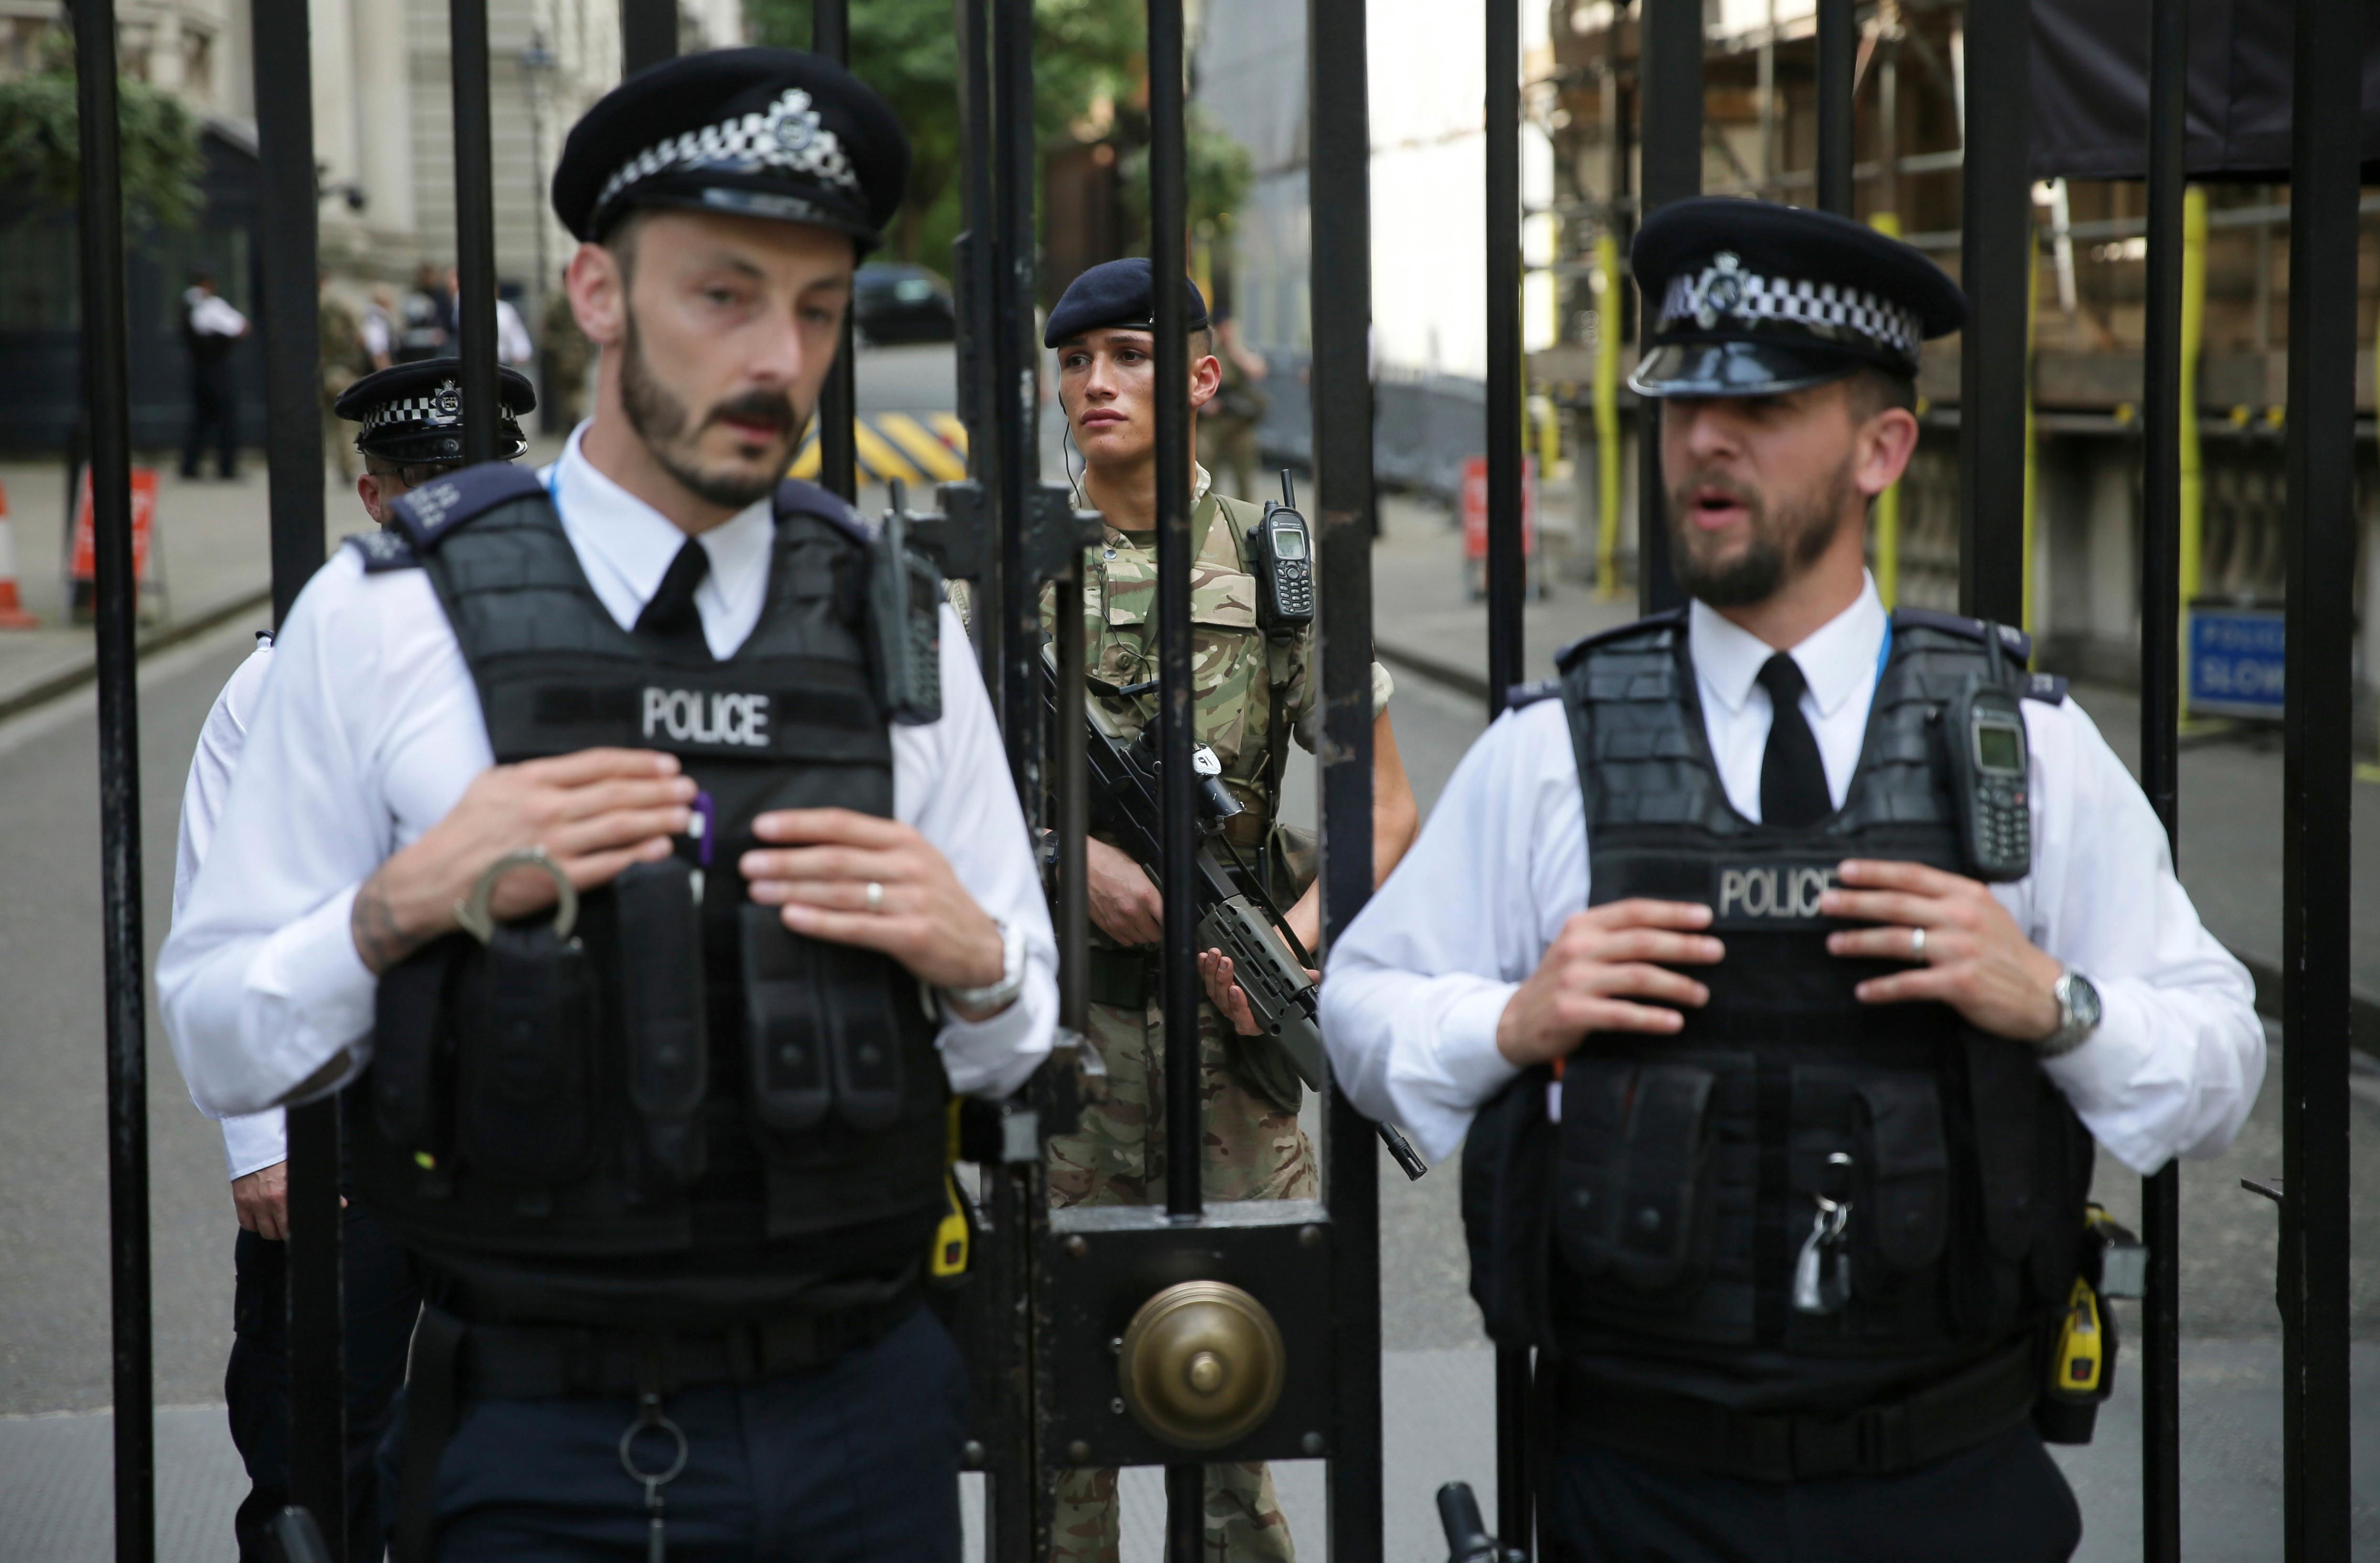 A soldier joins armed police officers guarding Downing Street in London, Wednesday May 24, 2017. Britons will find armed troops at vital locations Wednesday after the official threat level was raised to its highest point following a suicide bombing that killed 22, as new details emerged about the bomber. (AP Photo/Tim Ireland)